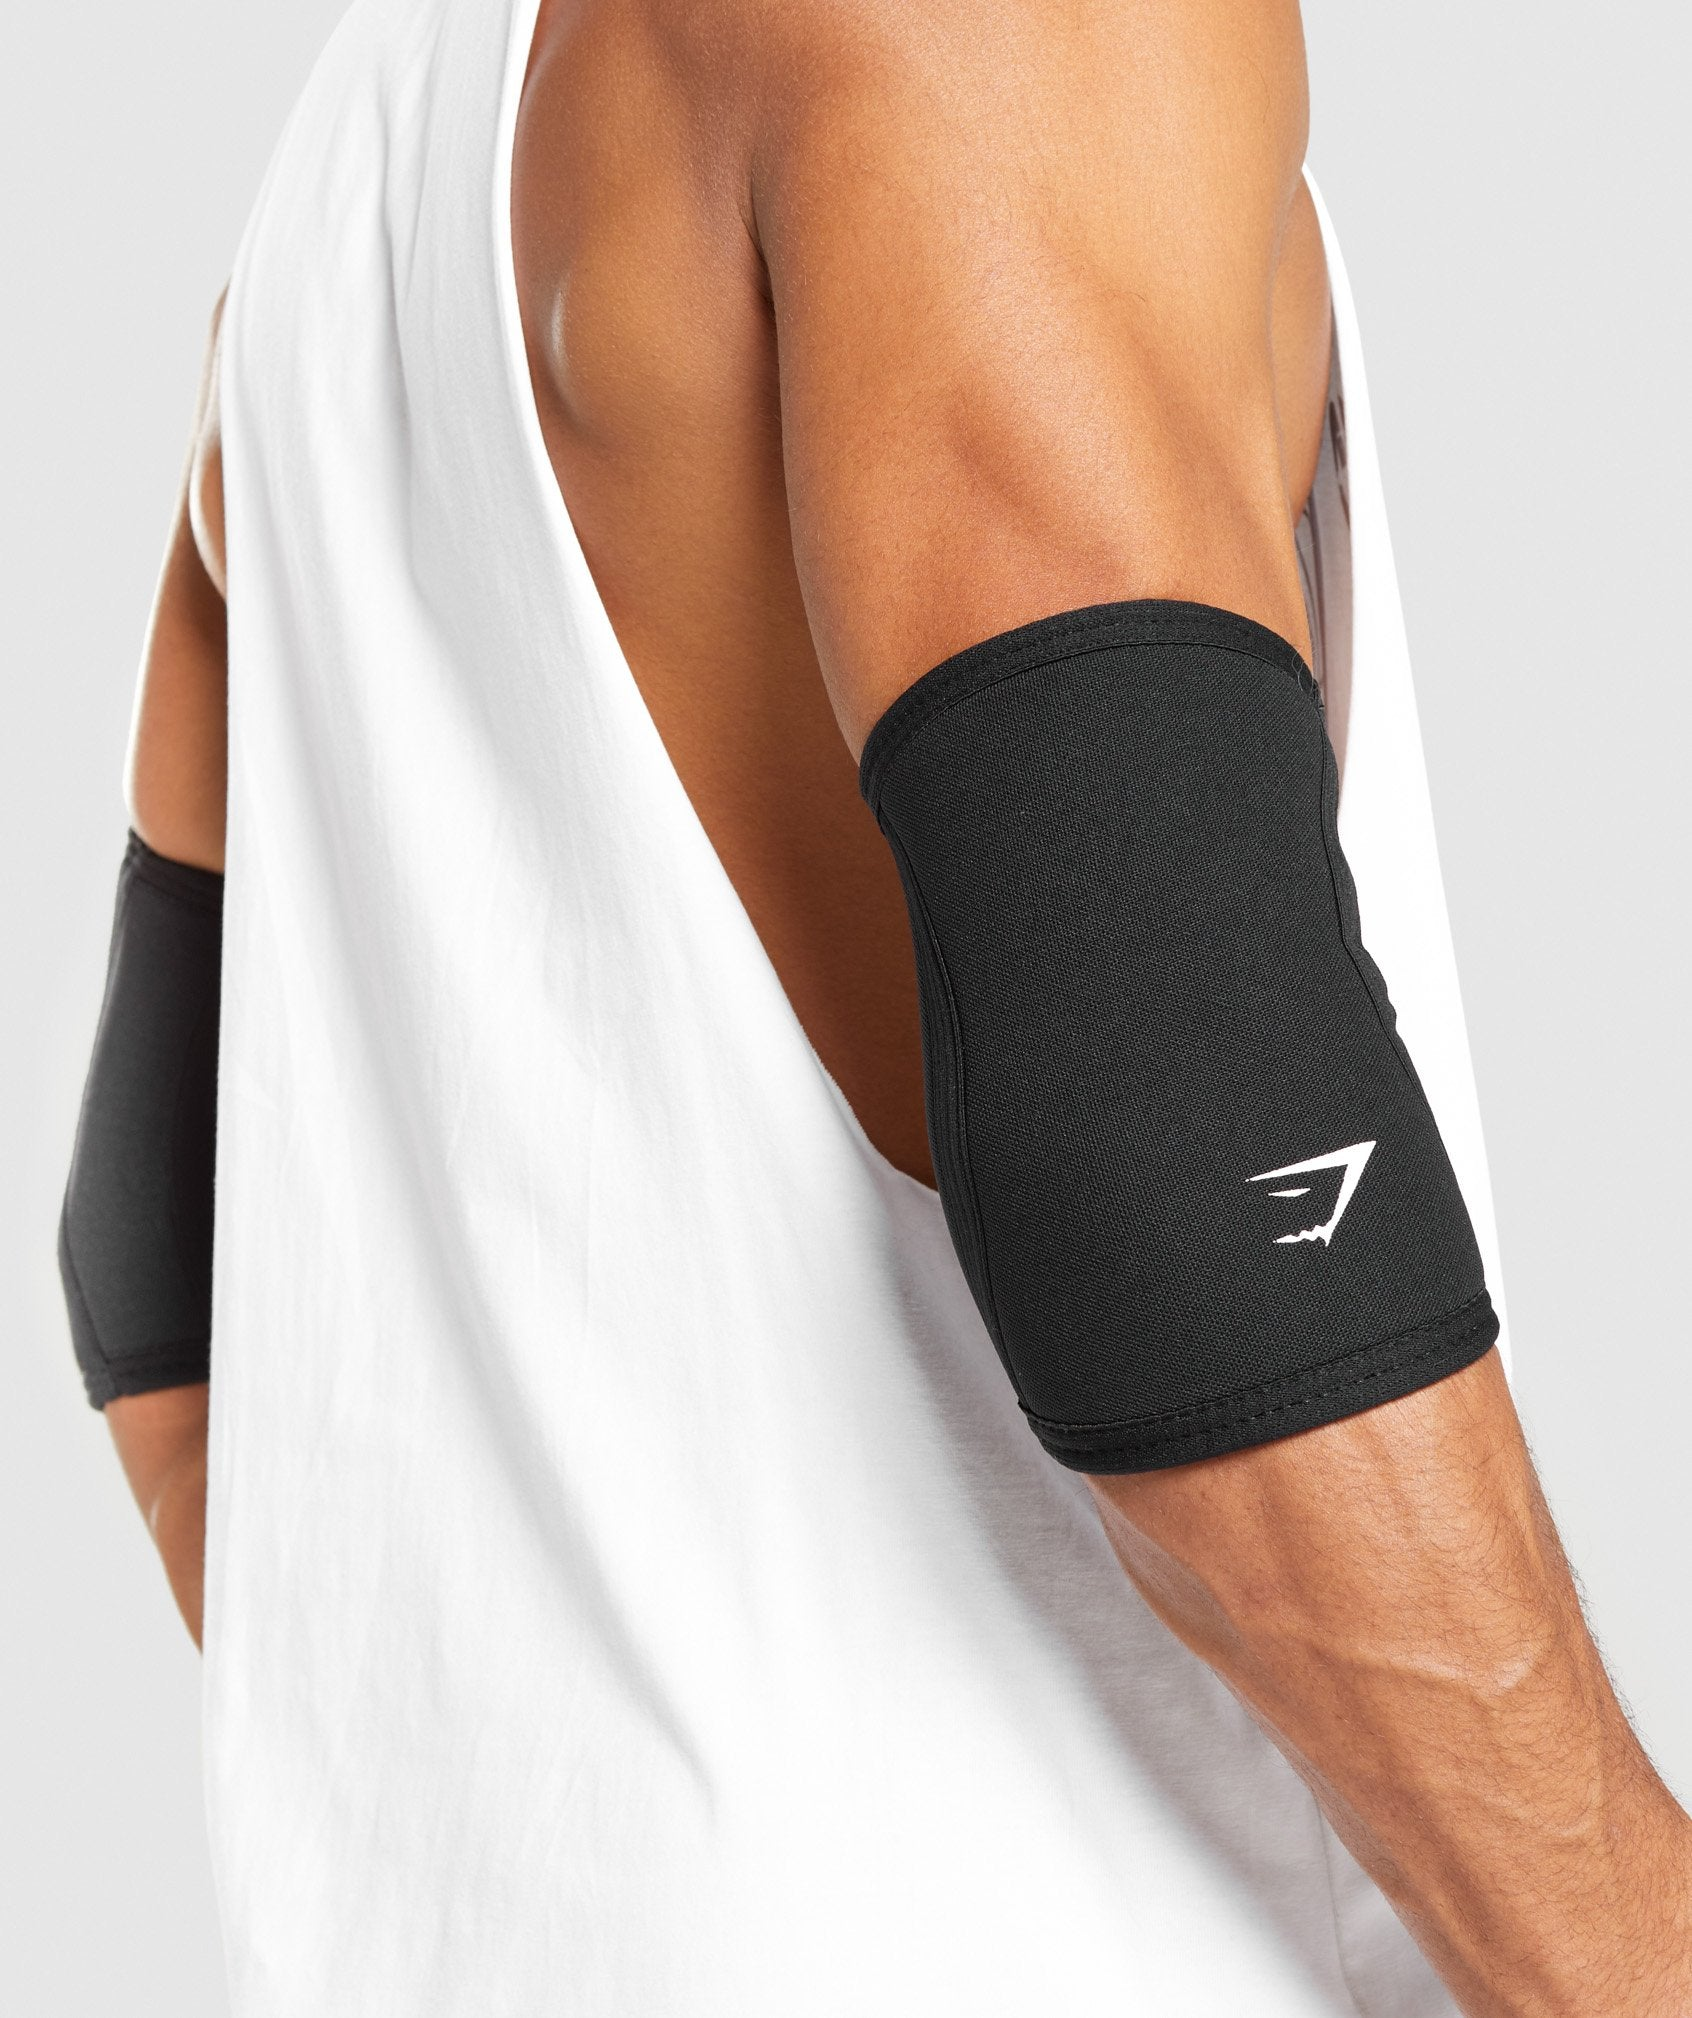 Classier: Buy Gymshark Elbow Sleeves - Black - Gymshark